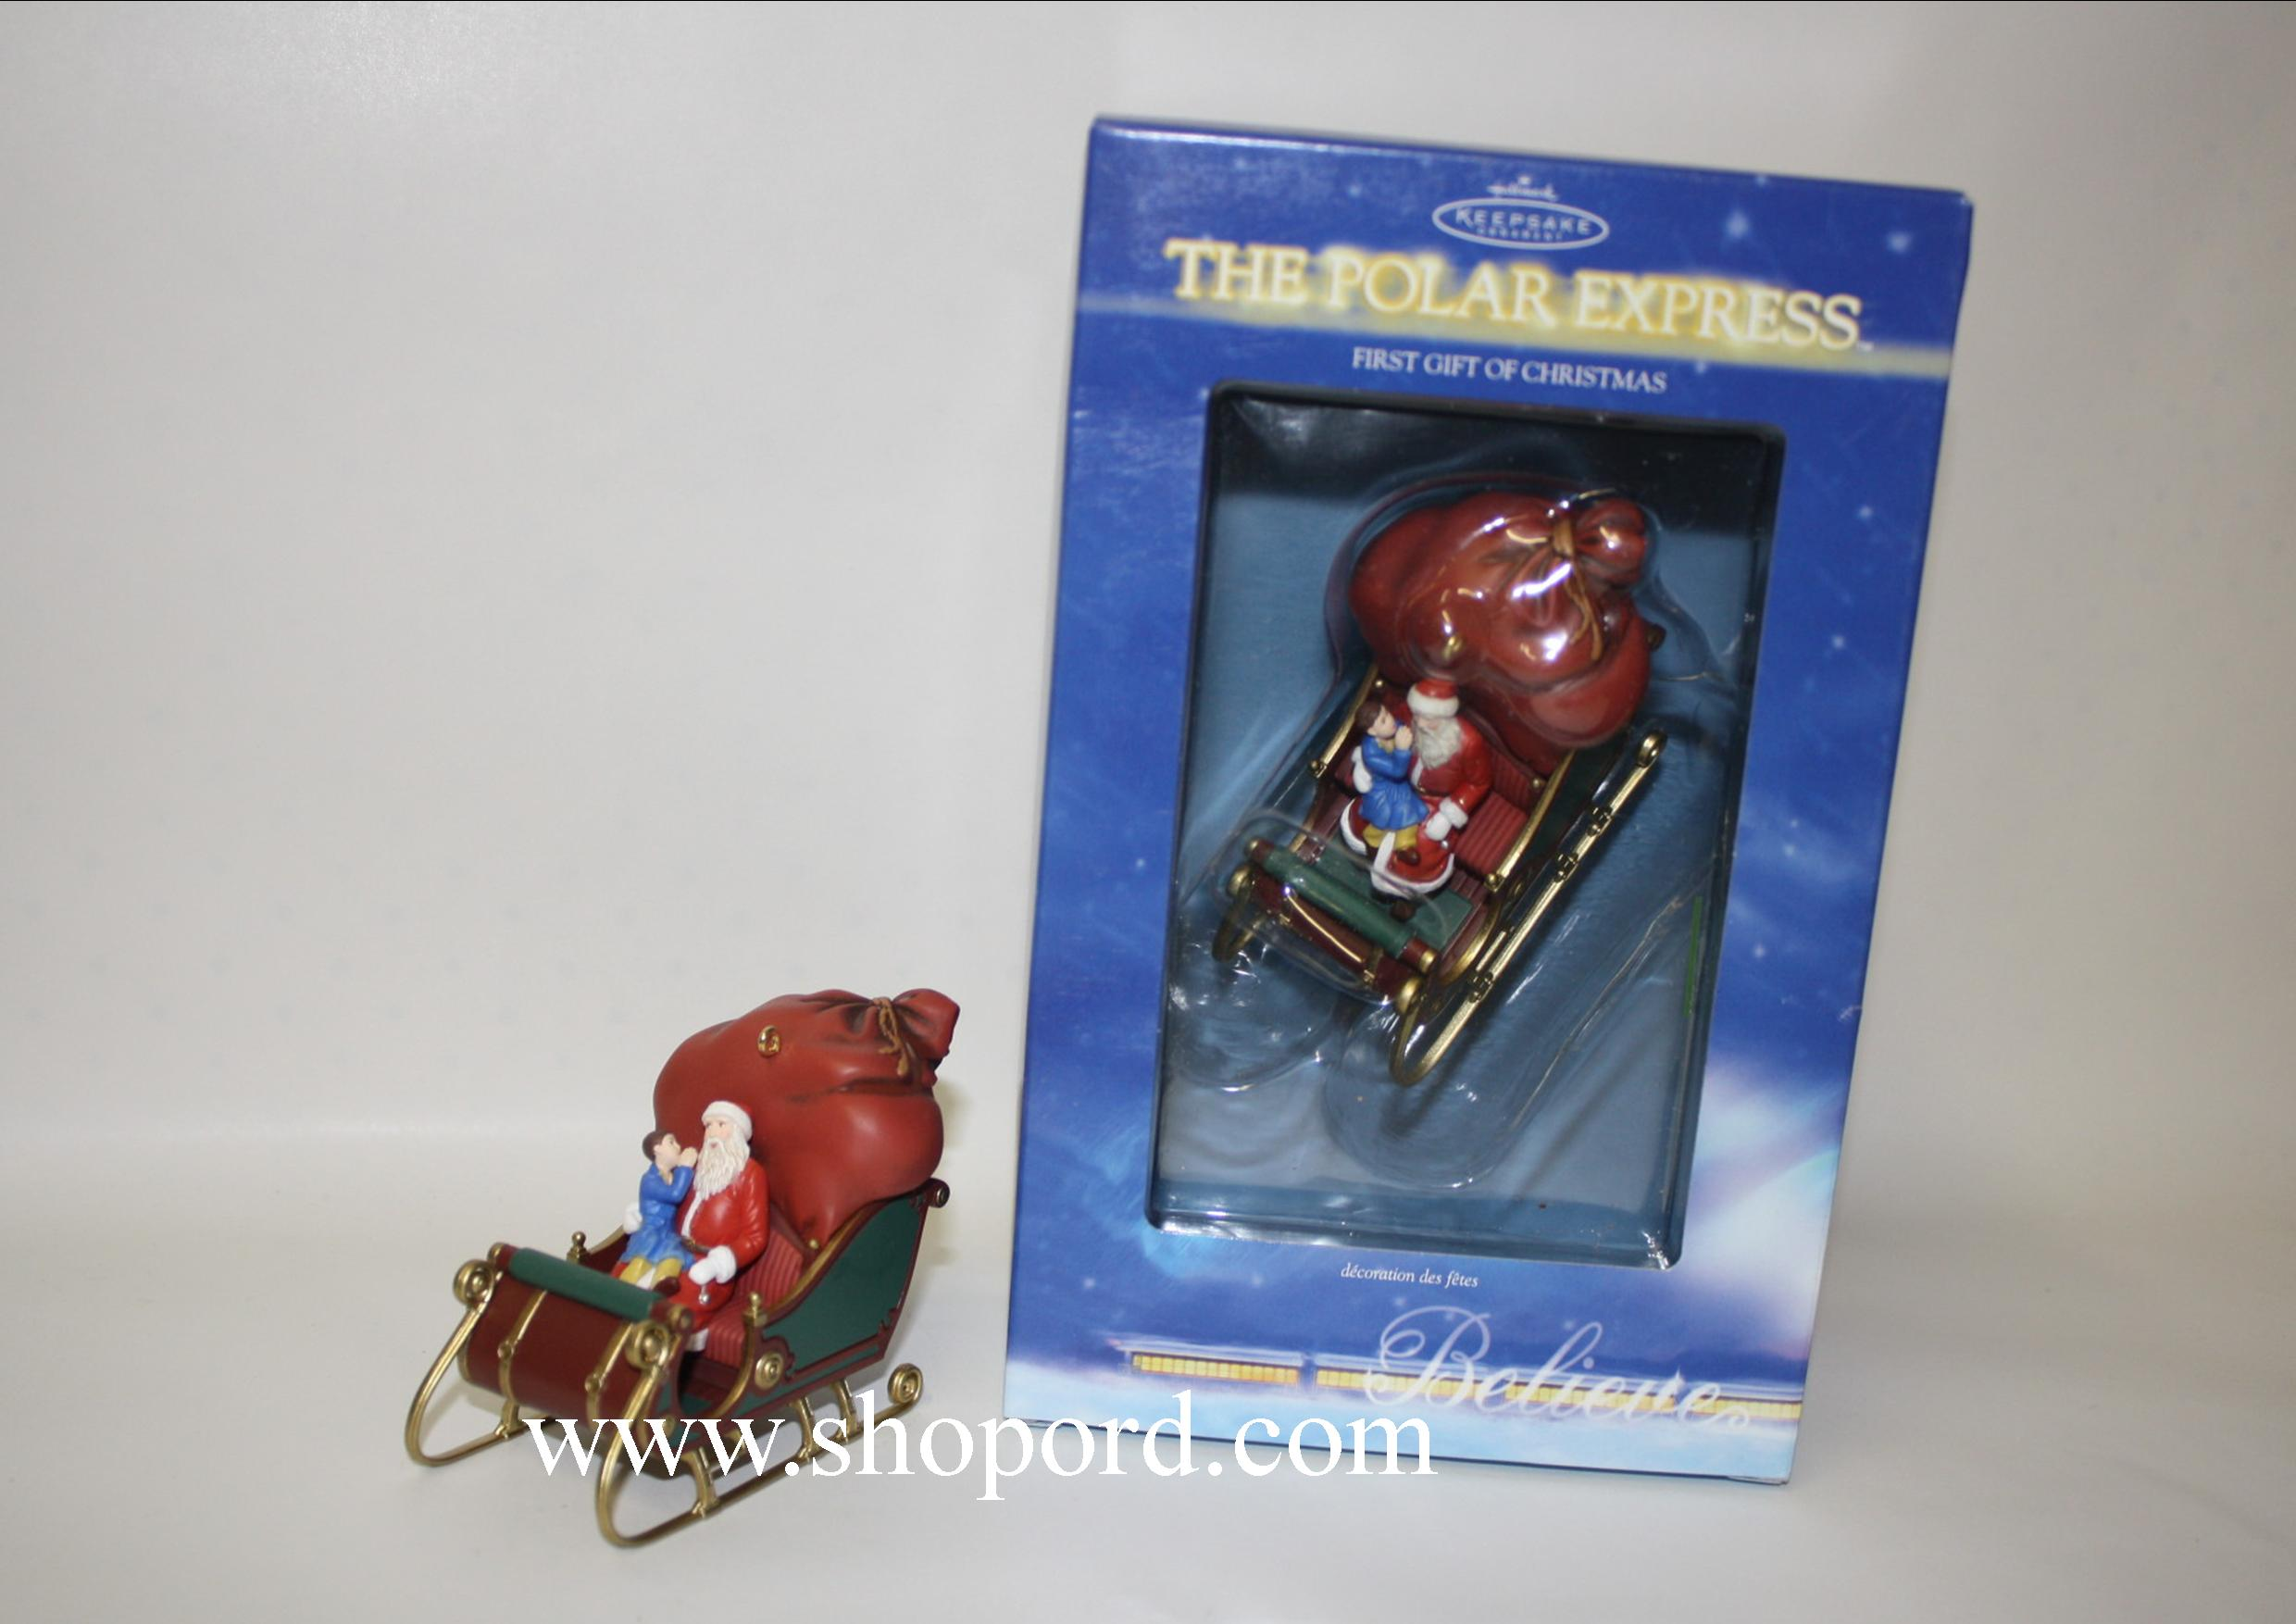 hallmark 2004 the polar express first gift of christmas ornament qsr5811